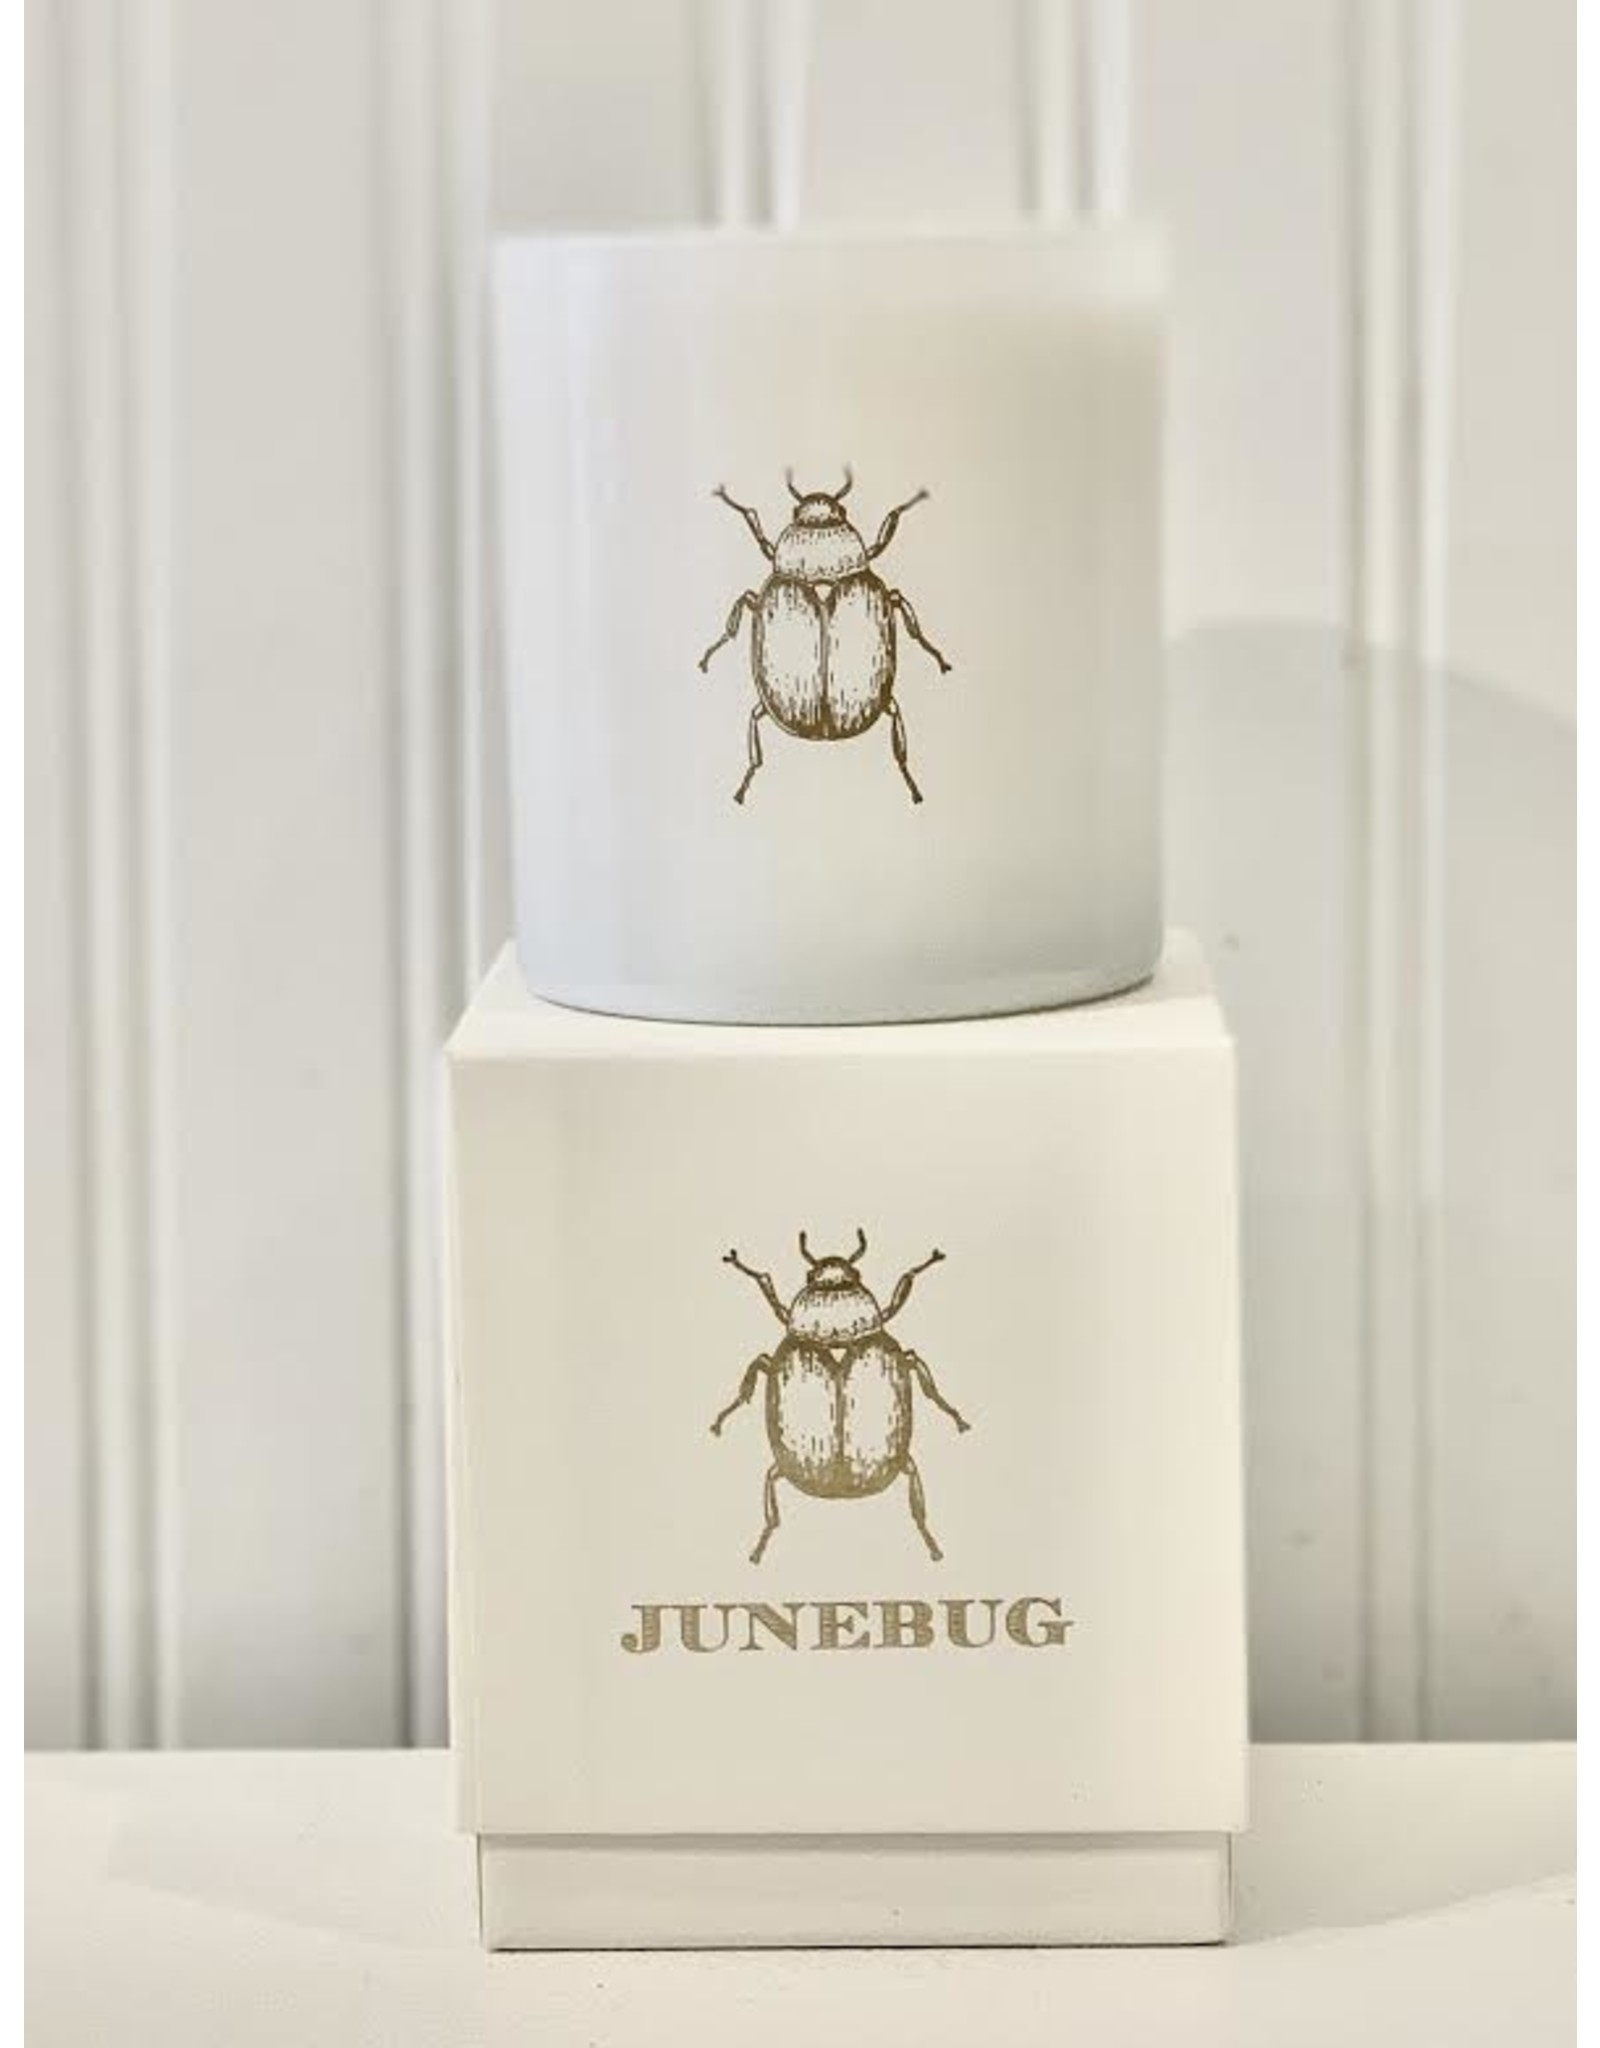 The Junebug Candle